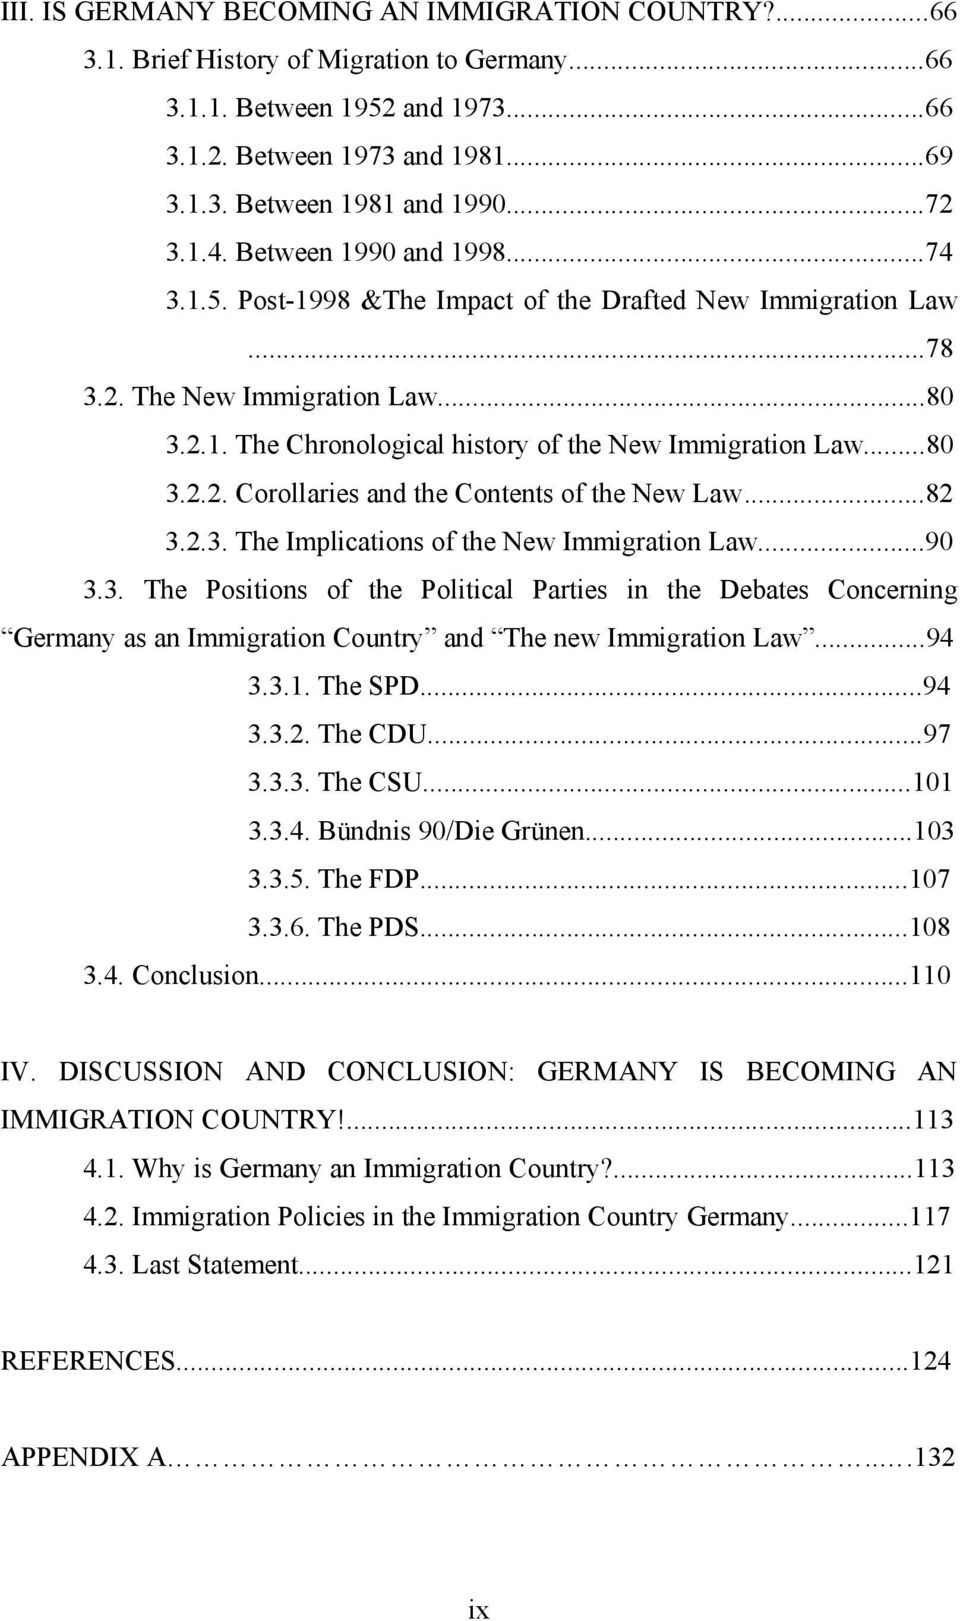 ..80 3.2.2. Corollaries and the Contents of the New Law...82 3.2.3. The Implications of the New Immigration Law...90 3.3. The Positions of the Political Parties in the Debates Concerning Germany as an Immigration Country and The new Immigration Law.